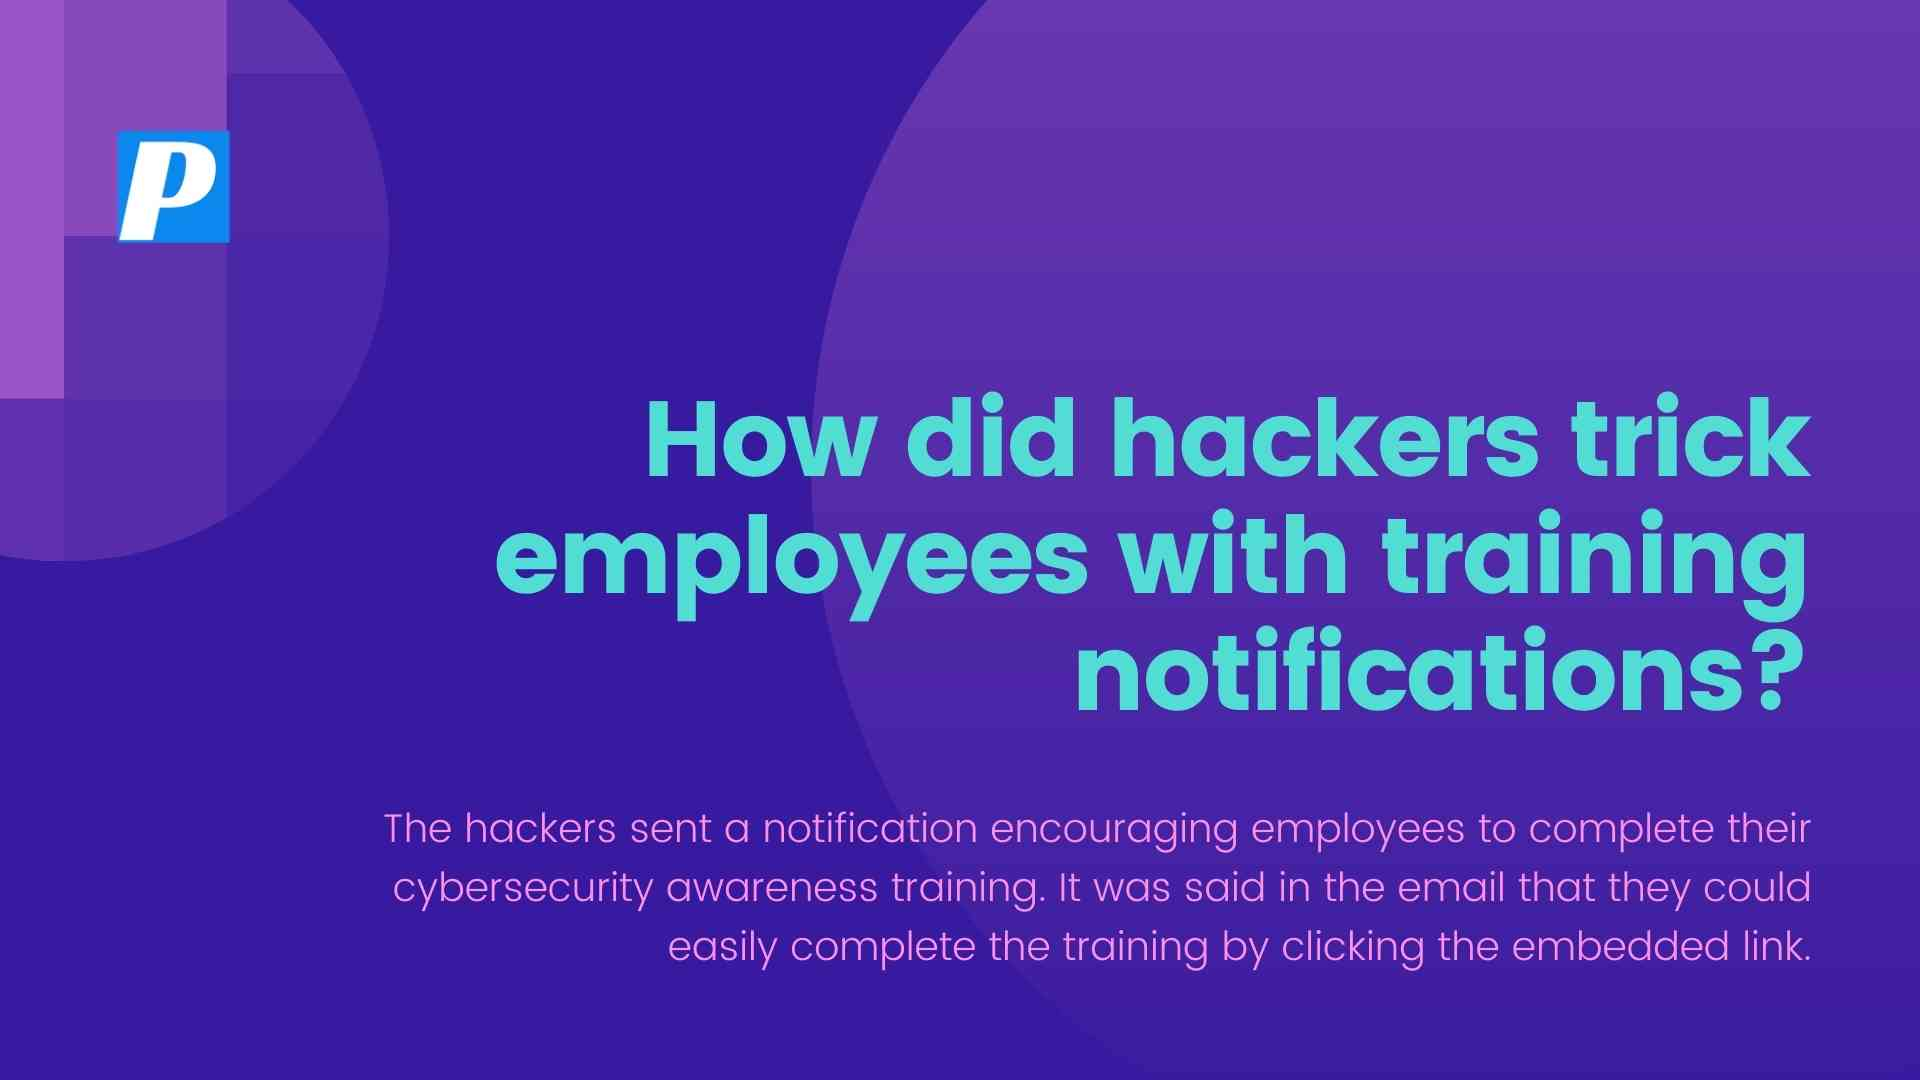 Hackers Trick Employees With Training Notifications